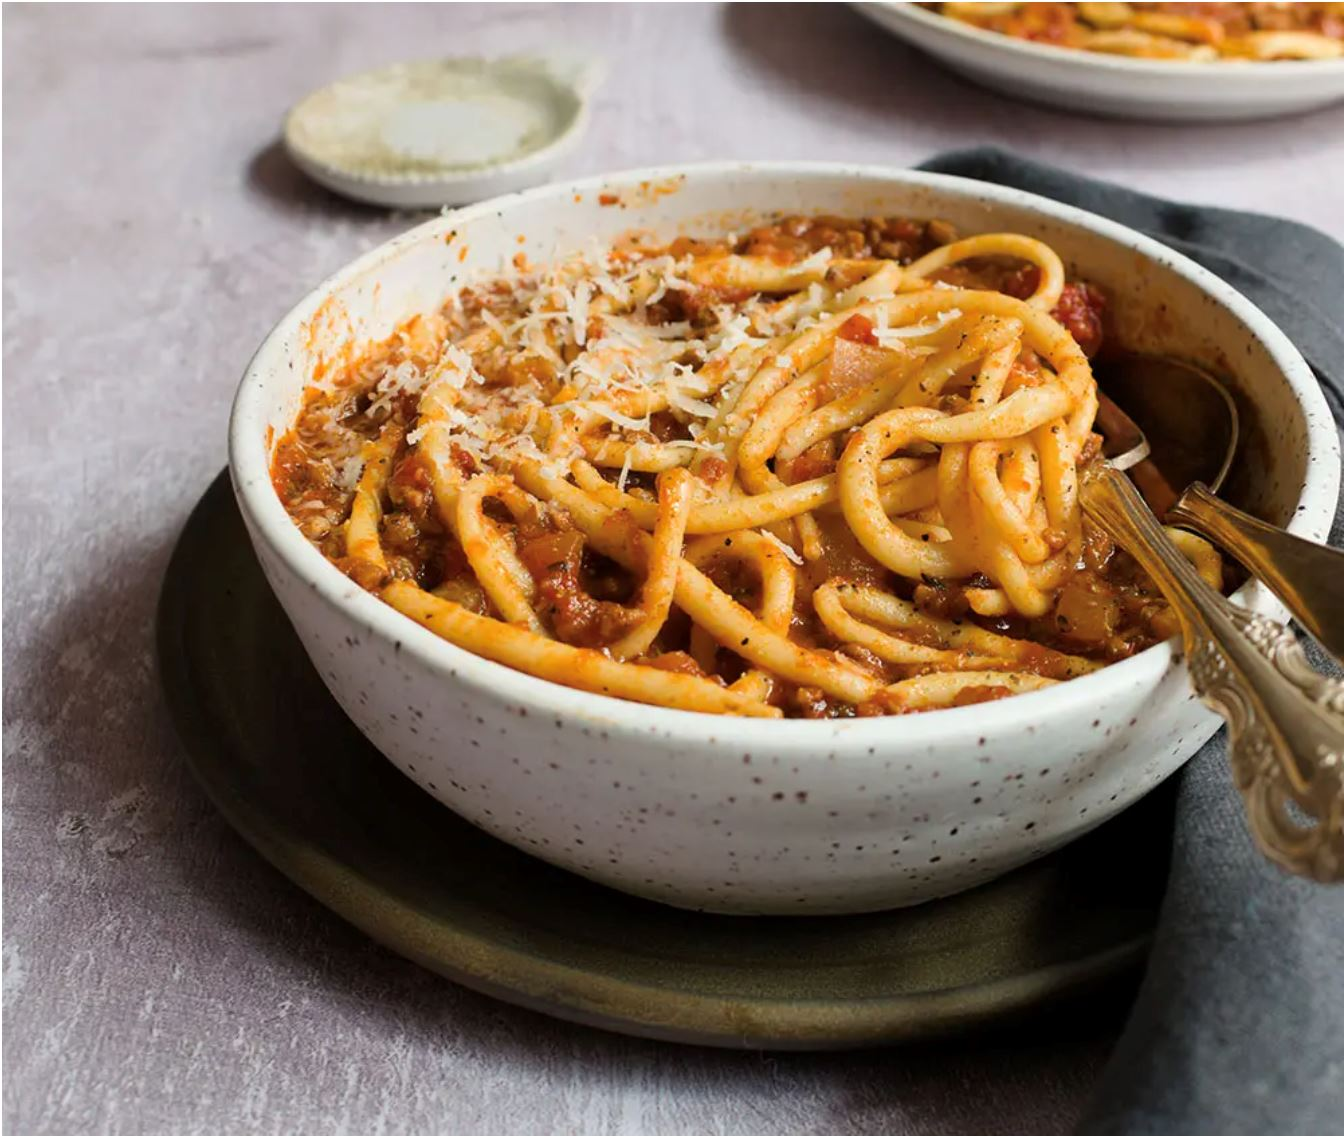 Pici with orange-flavored white ragù